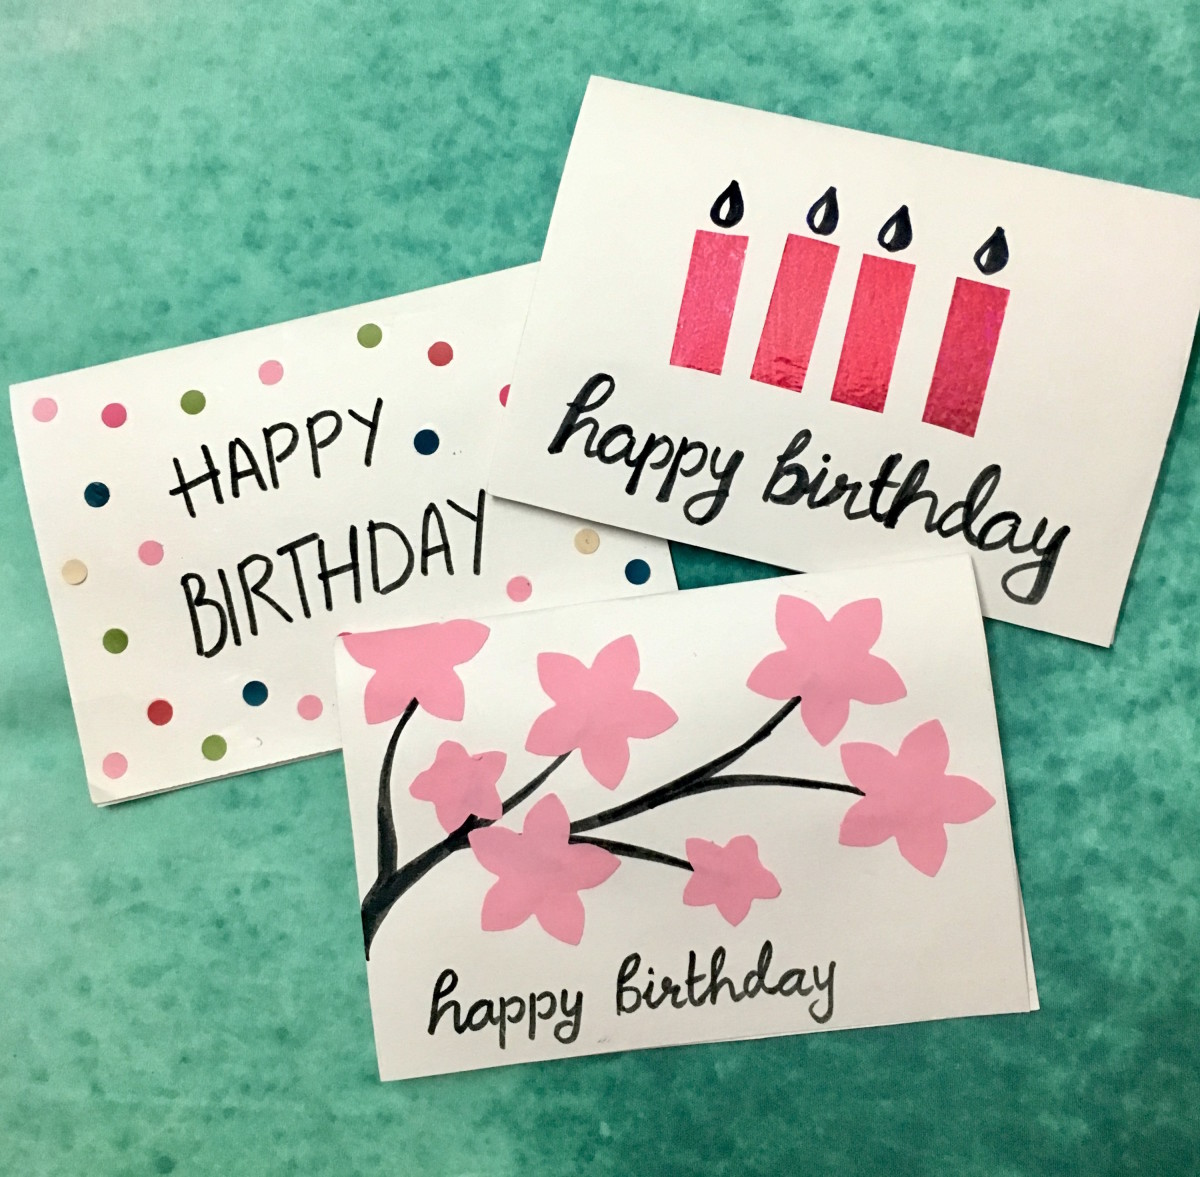 3 Easy 5 Minute Diy Birthday Greeting Cards Holidappy Celebrations